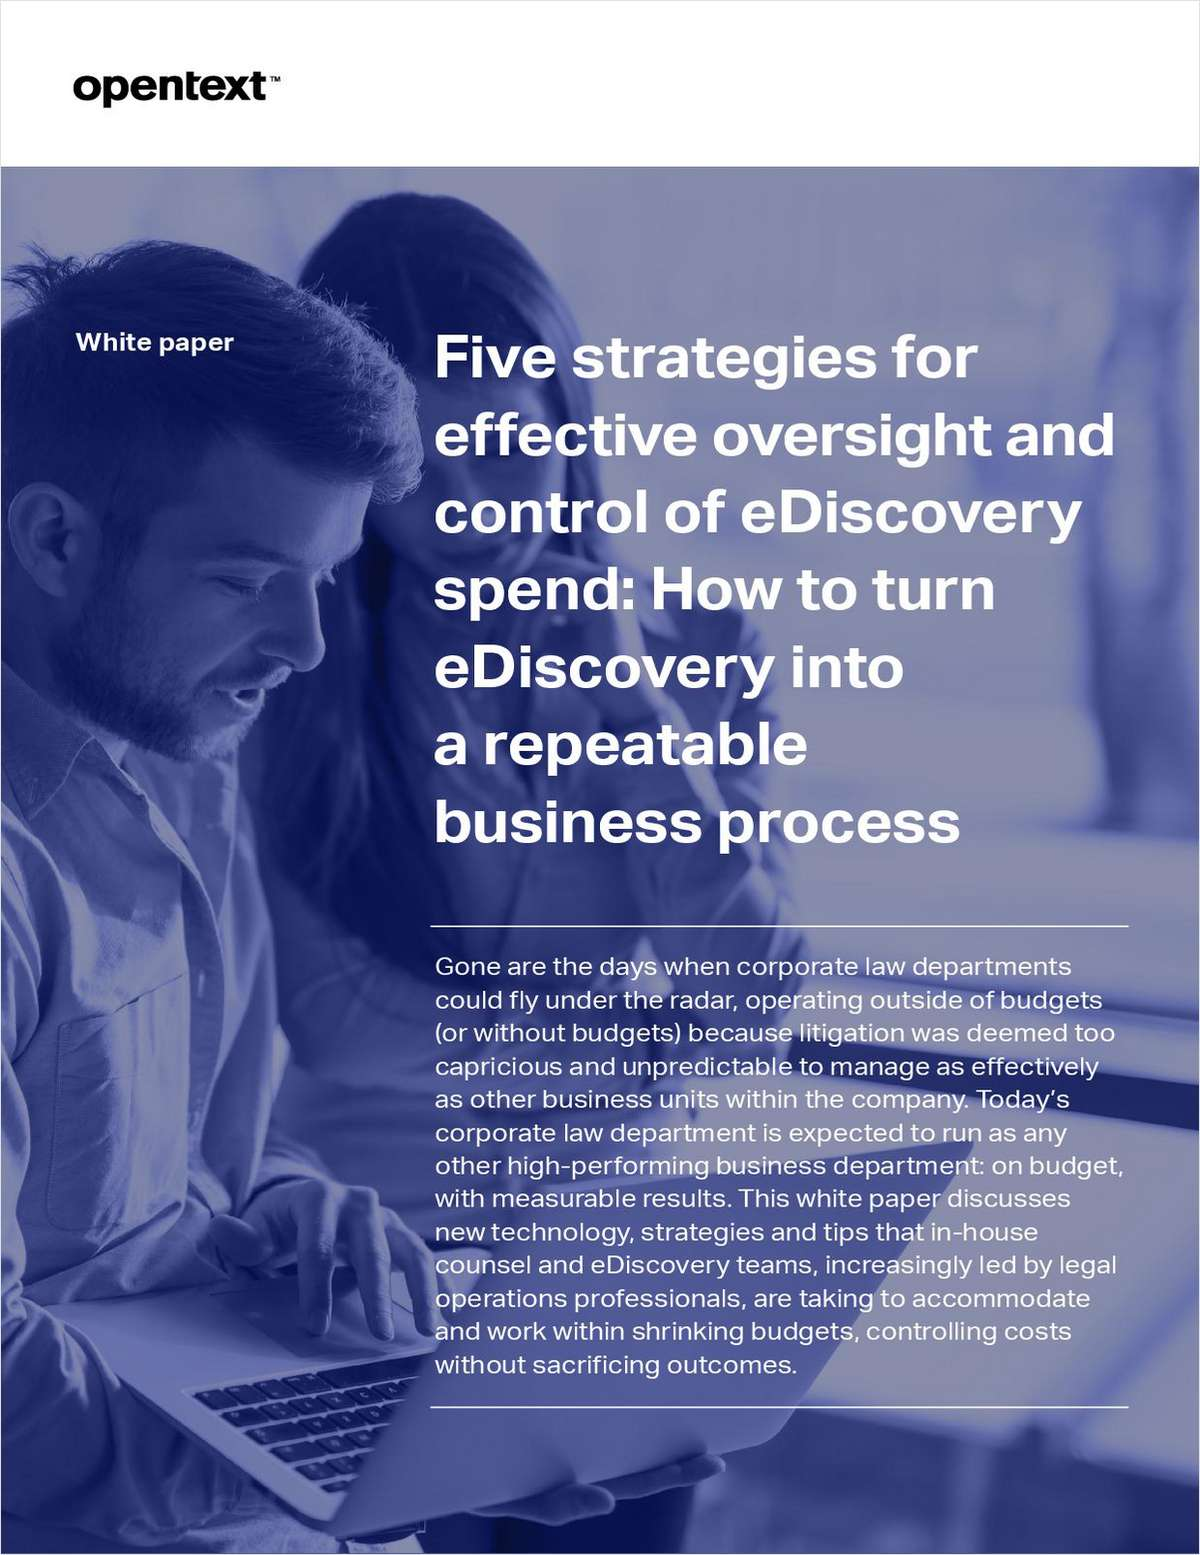 5 Strategies to Control eDiscovery Spend and Build Repeatable Processes